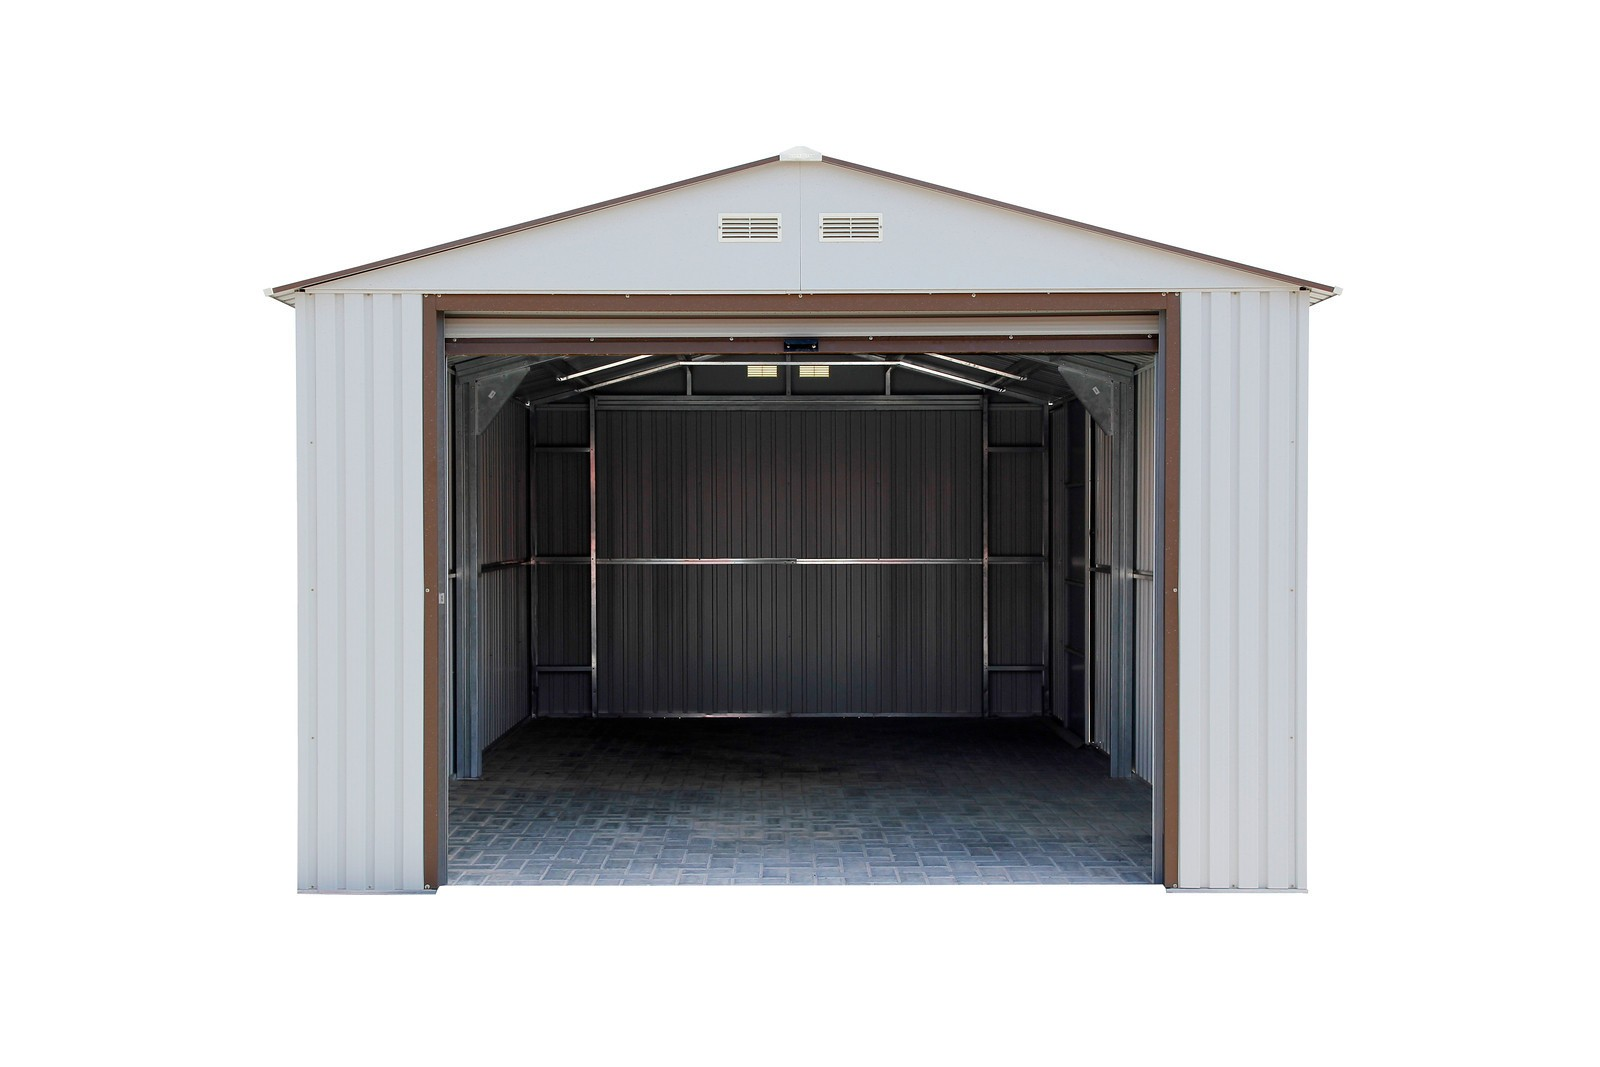 duramax metal garage u2013 12u0027 x 32u0027 metal storage shed u2013 off white with brown trim